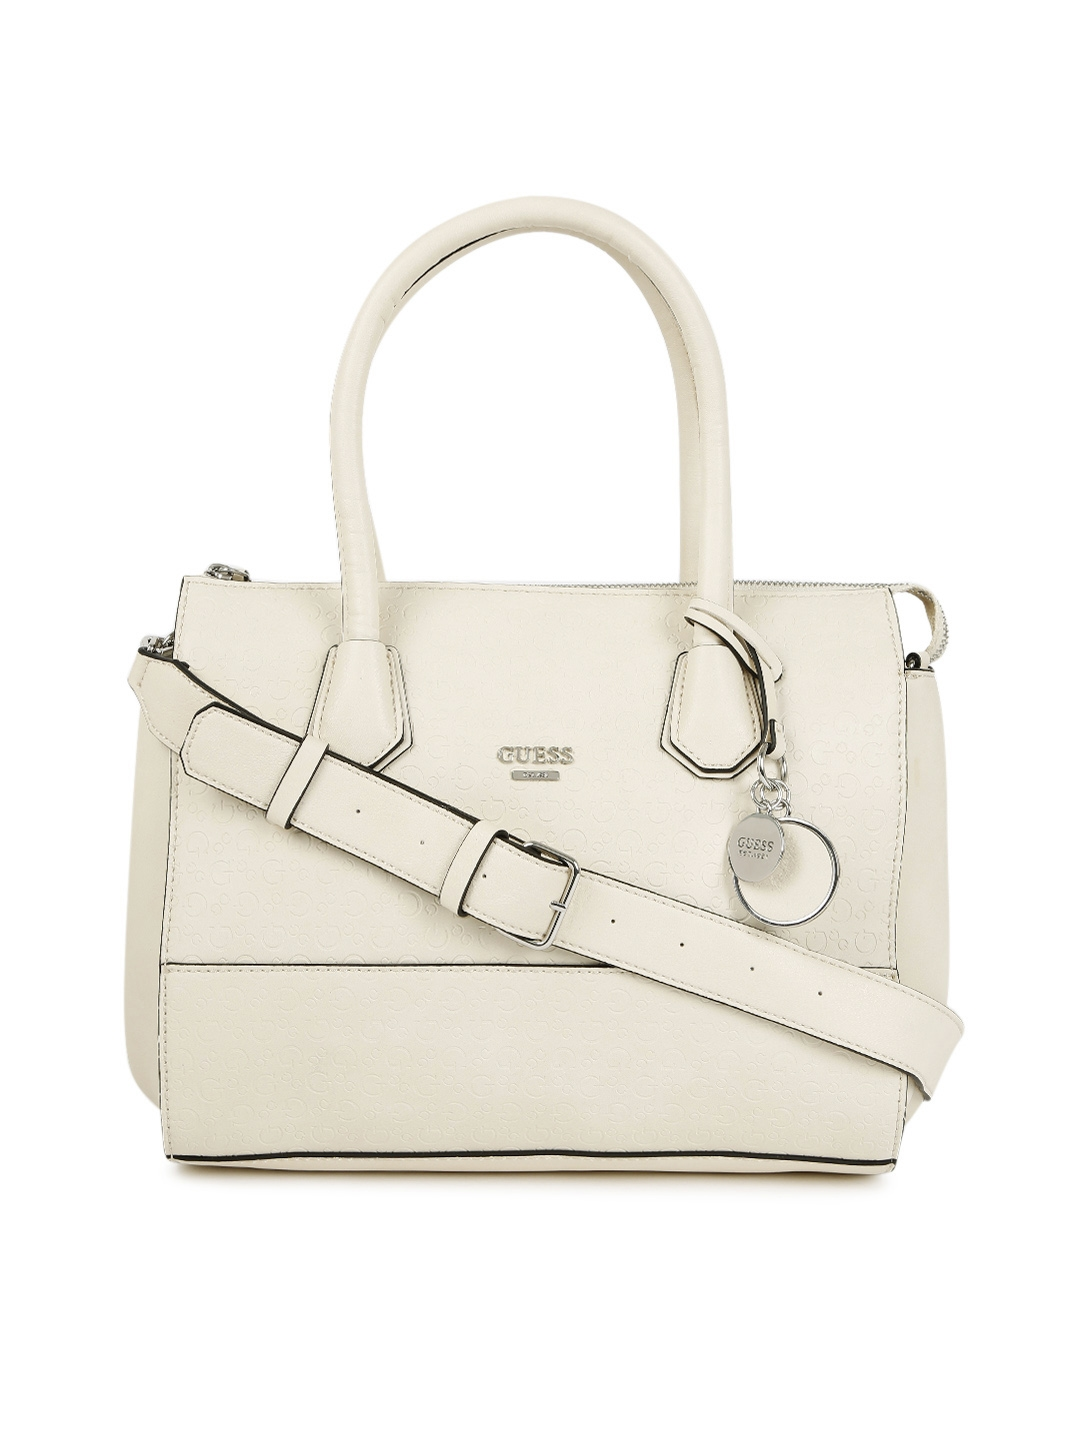 Buy GUESS Cream Coloured Textured Handbag